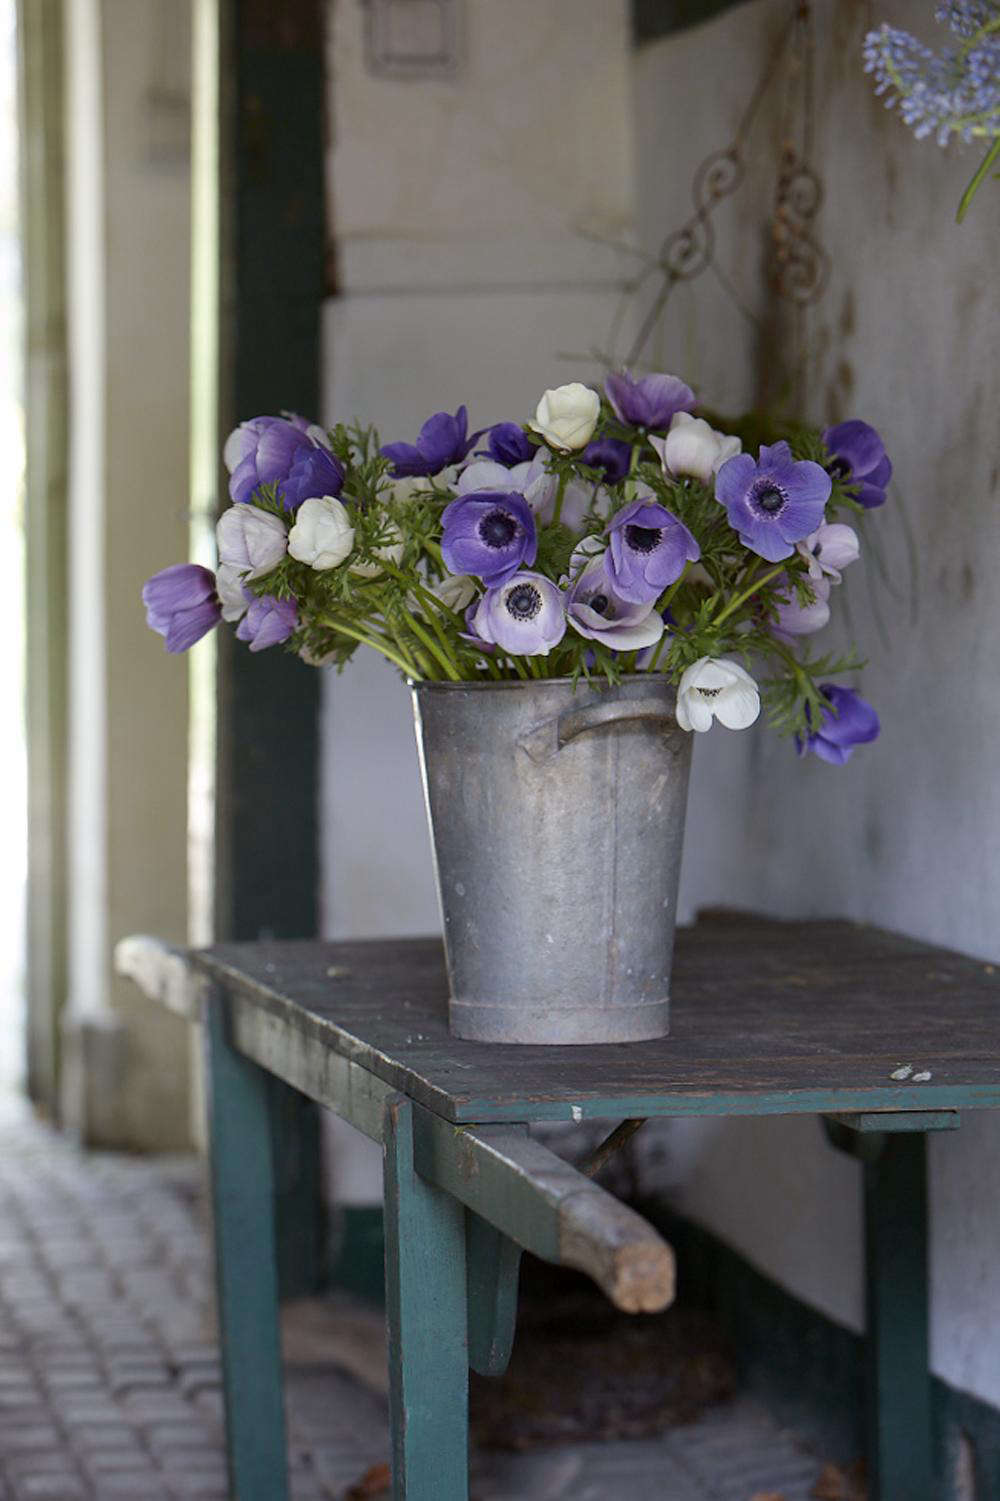 Freshly cut anemones rest in the cool interior of Polly's stables.